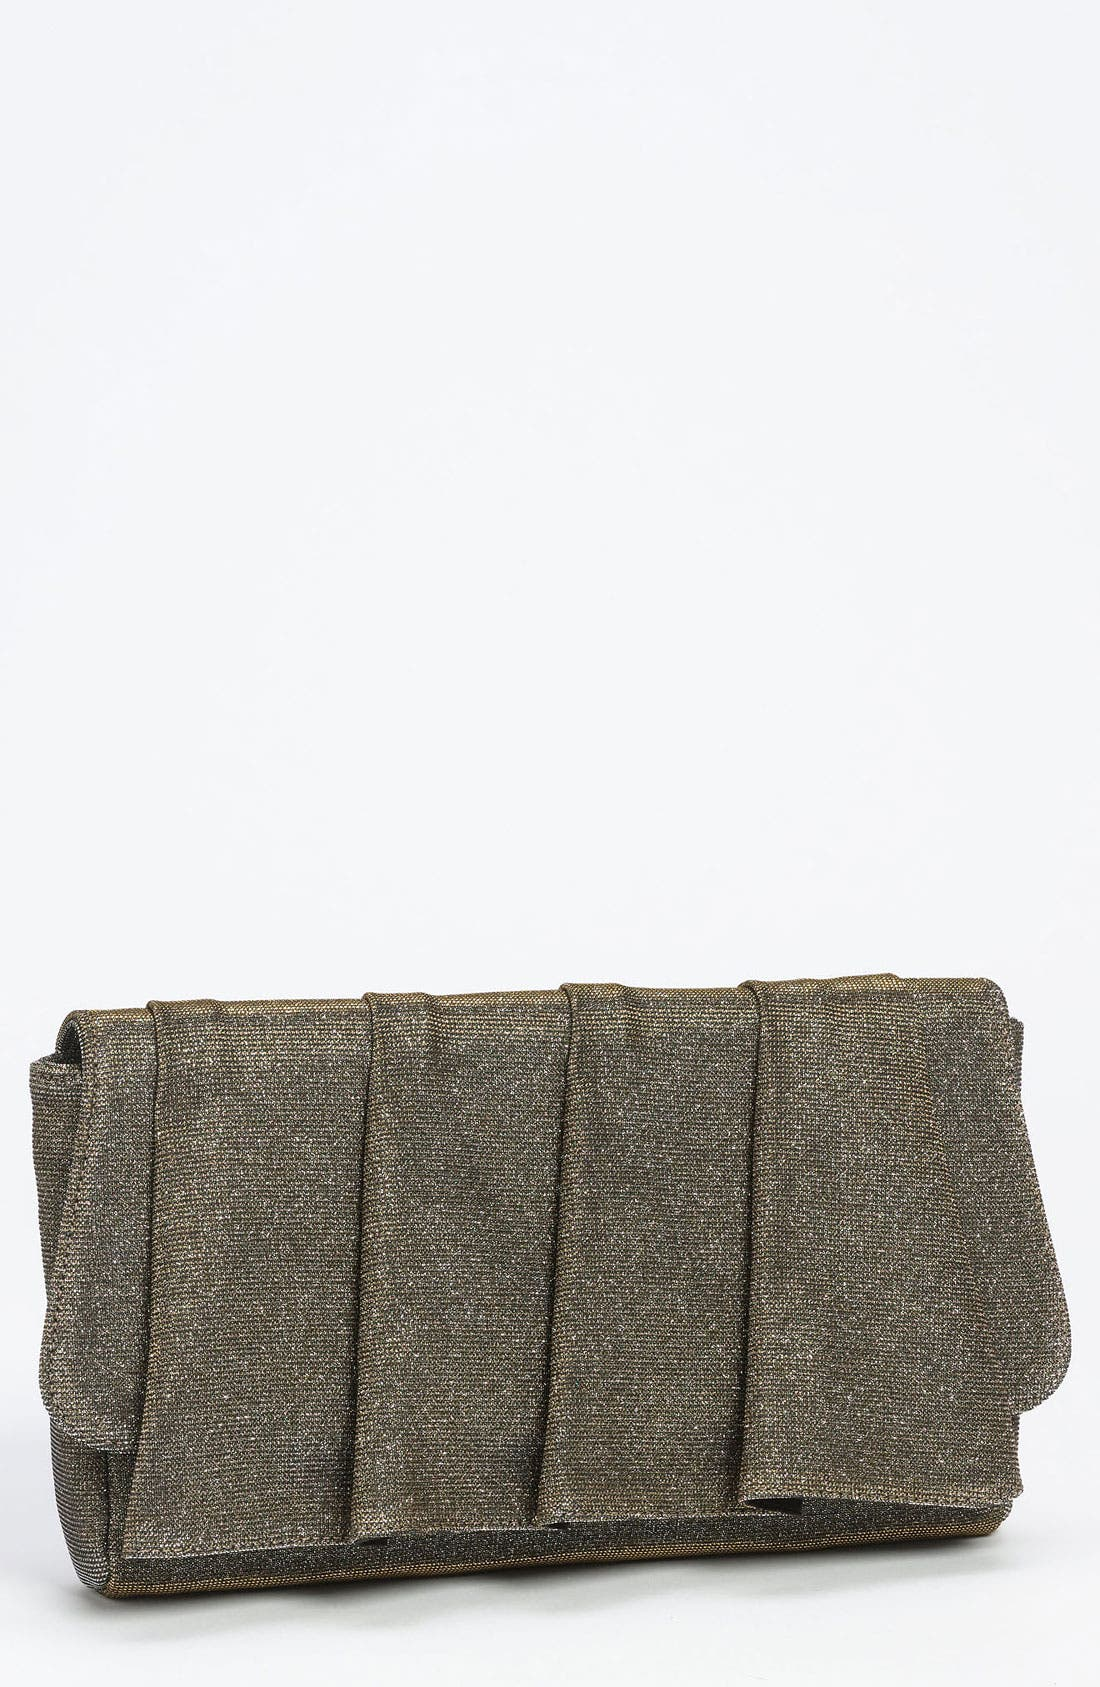 Alternate Image 1 Selected - Stuart Weitzman 'Arpeggio' Clutch